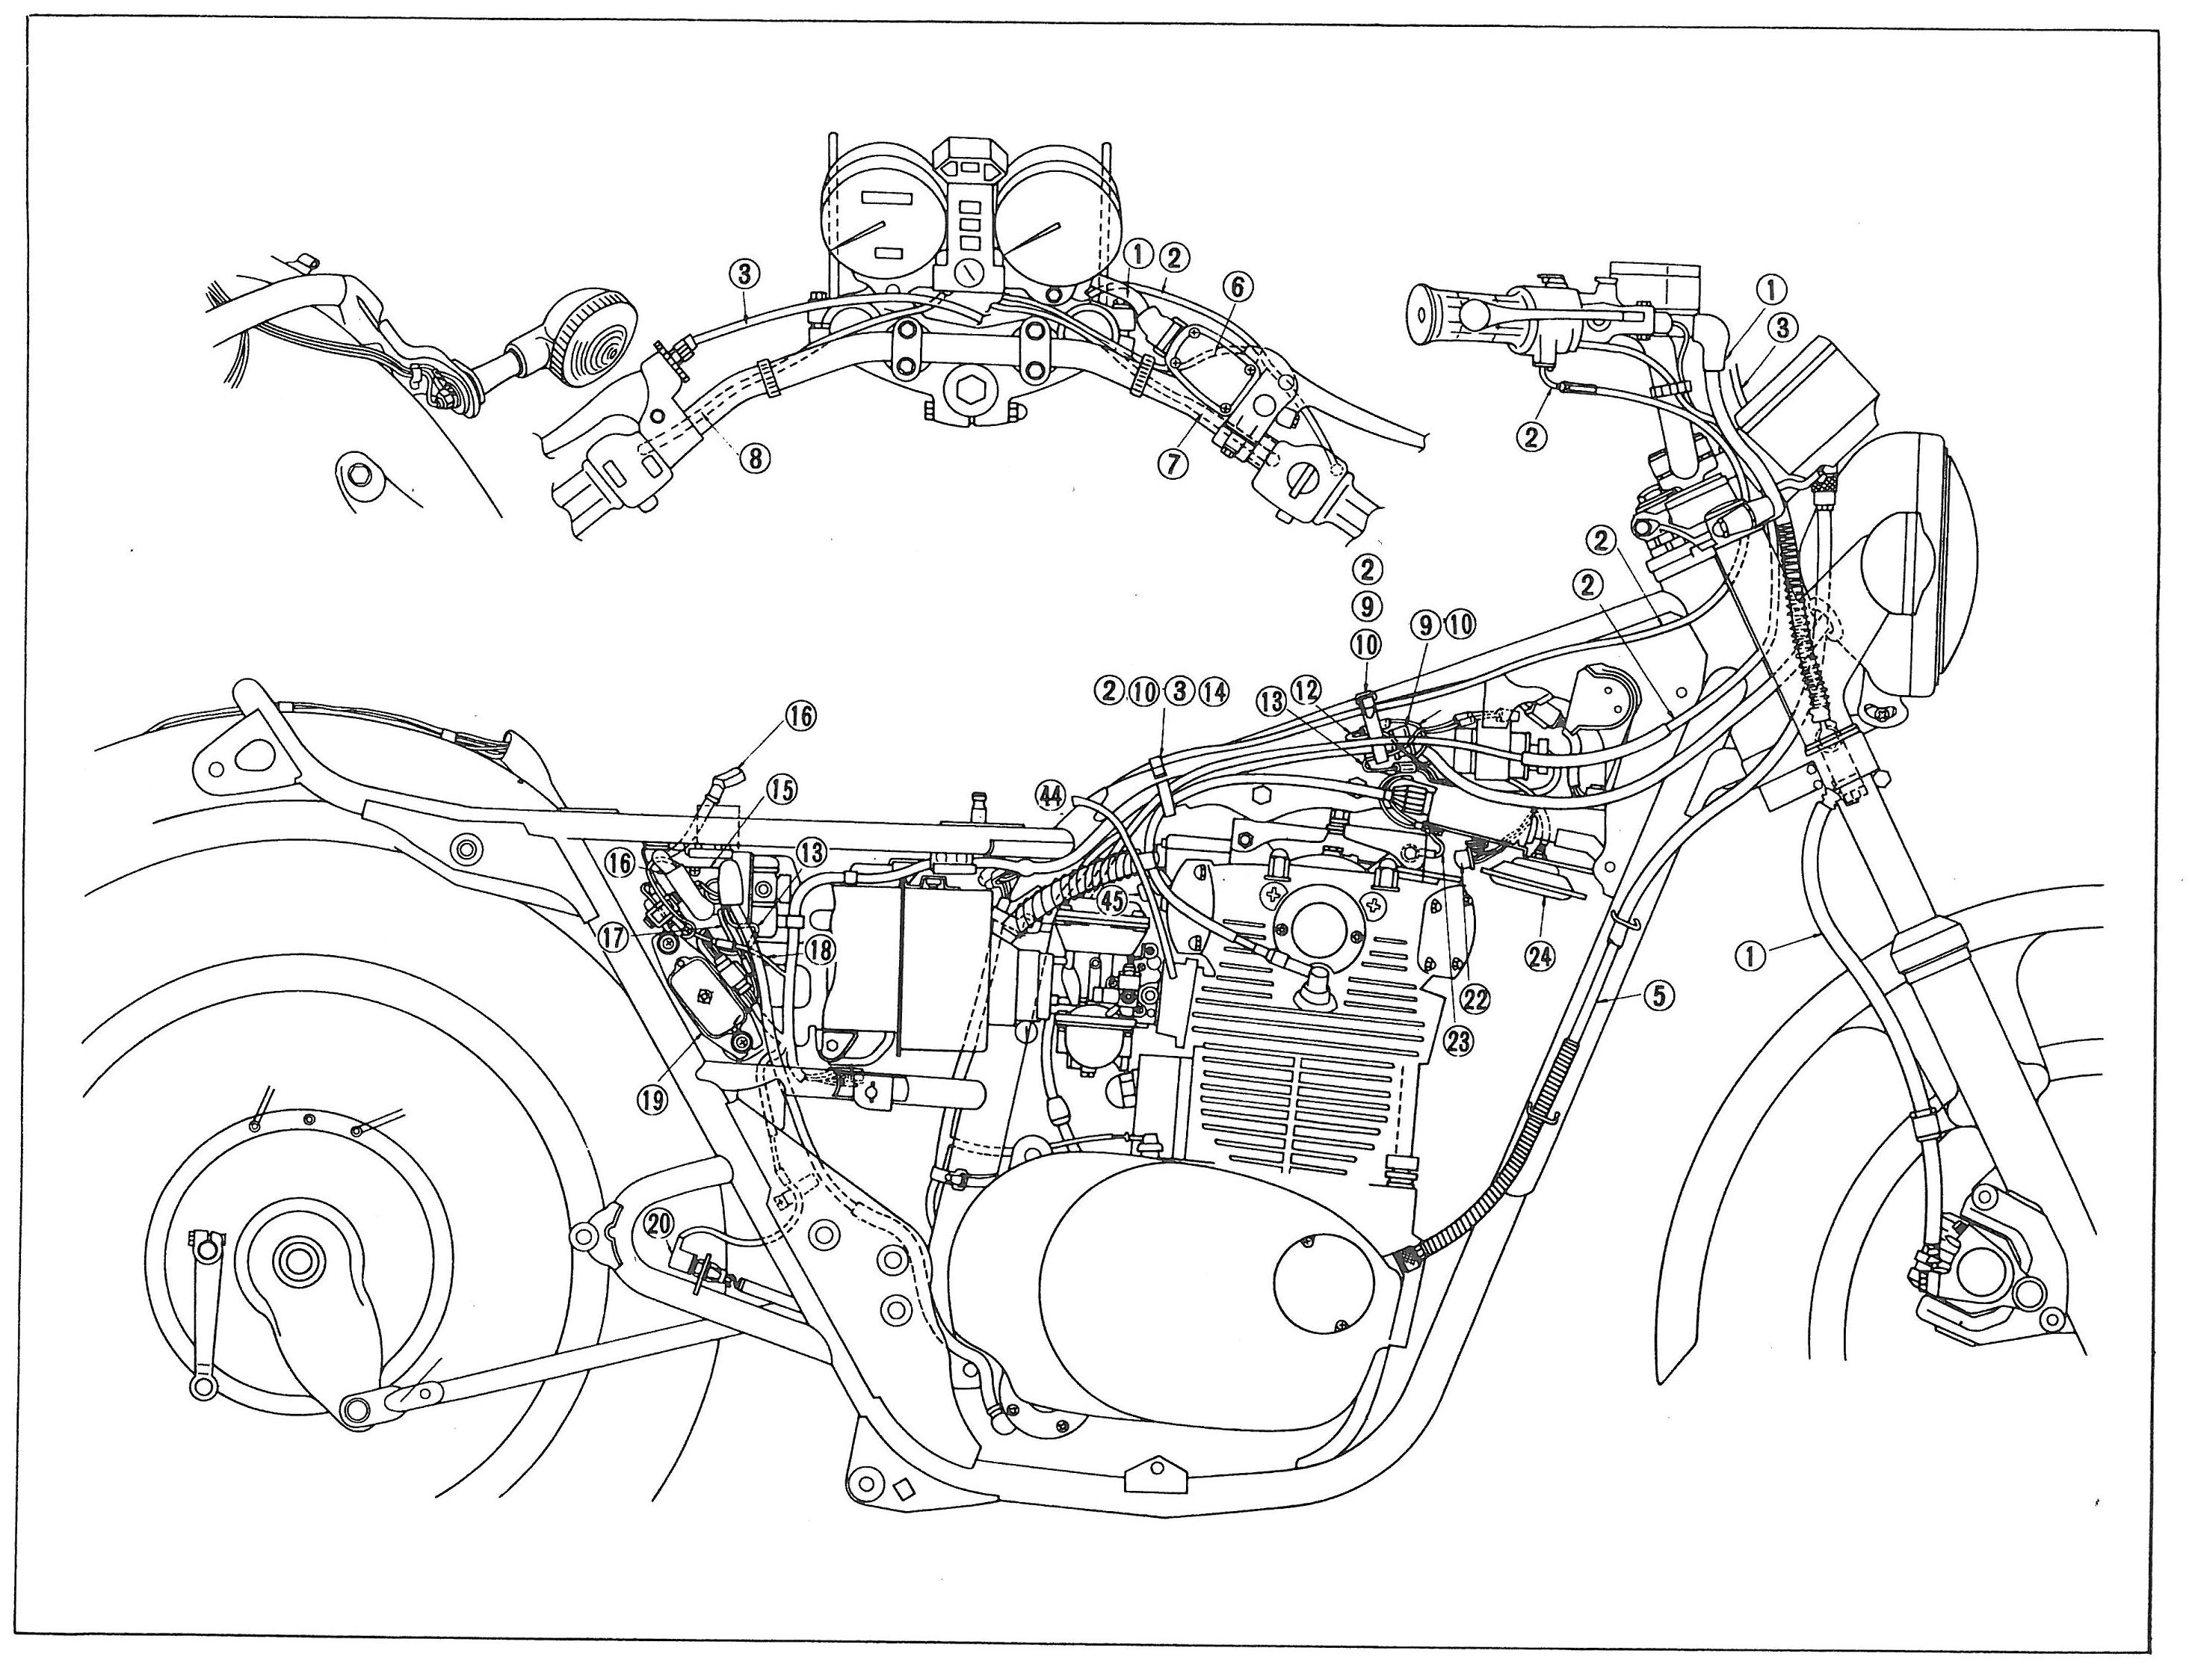 1979 yamaha xs650 wiring diagram schematics wiring diagrams u2022 rh  parntesis co 1975 Yamaha XS650 Wiring-Diagram Yamaha Motorcycle Wiring  Diagrams